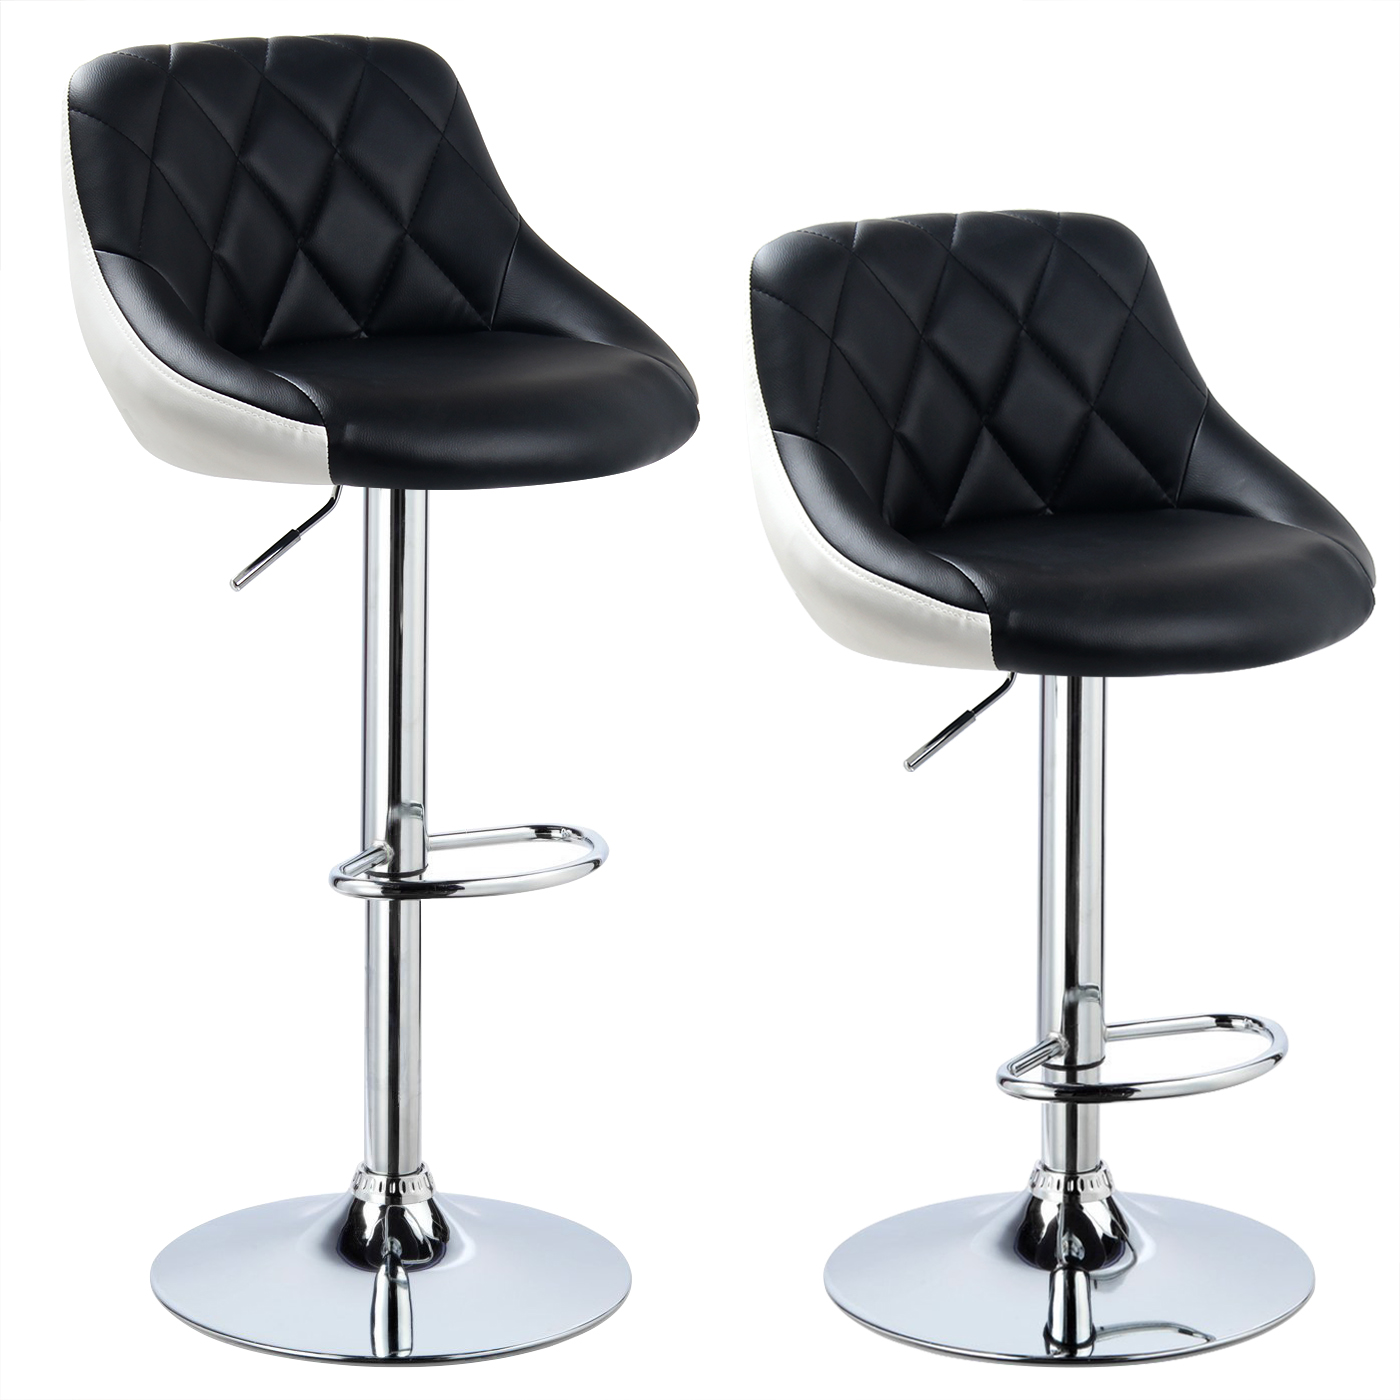 Tabourets de bar cuisine lot de 2 pivotant 360 chaise - Chaise bar reglable ...